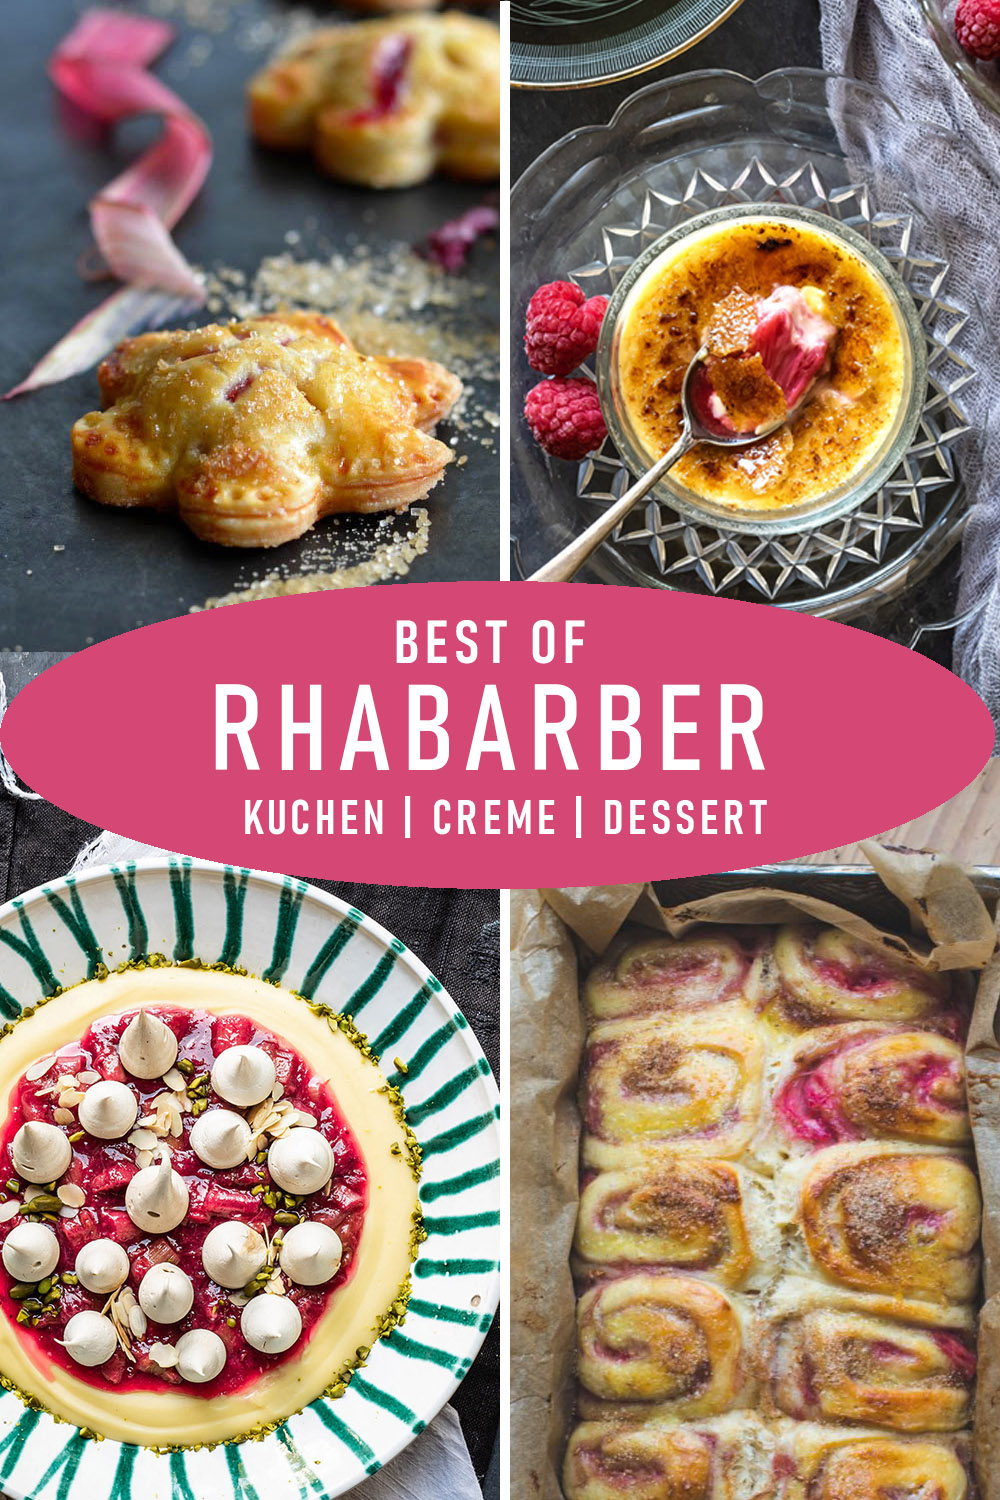 Best of Rhabarber